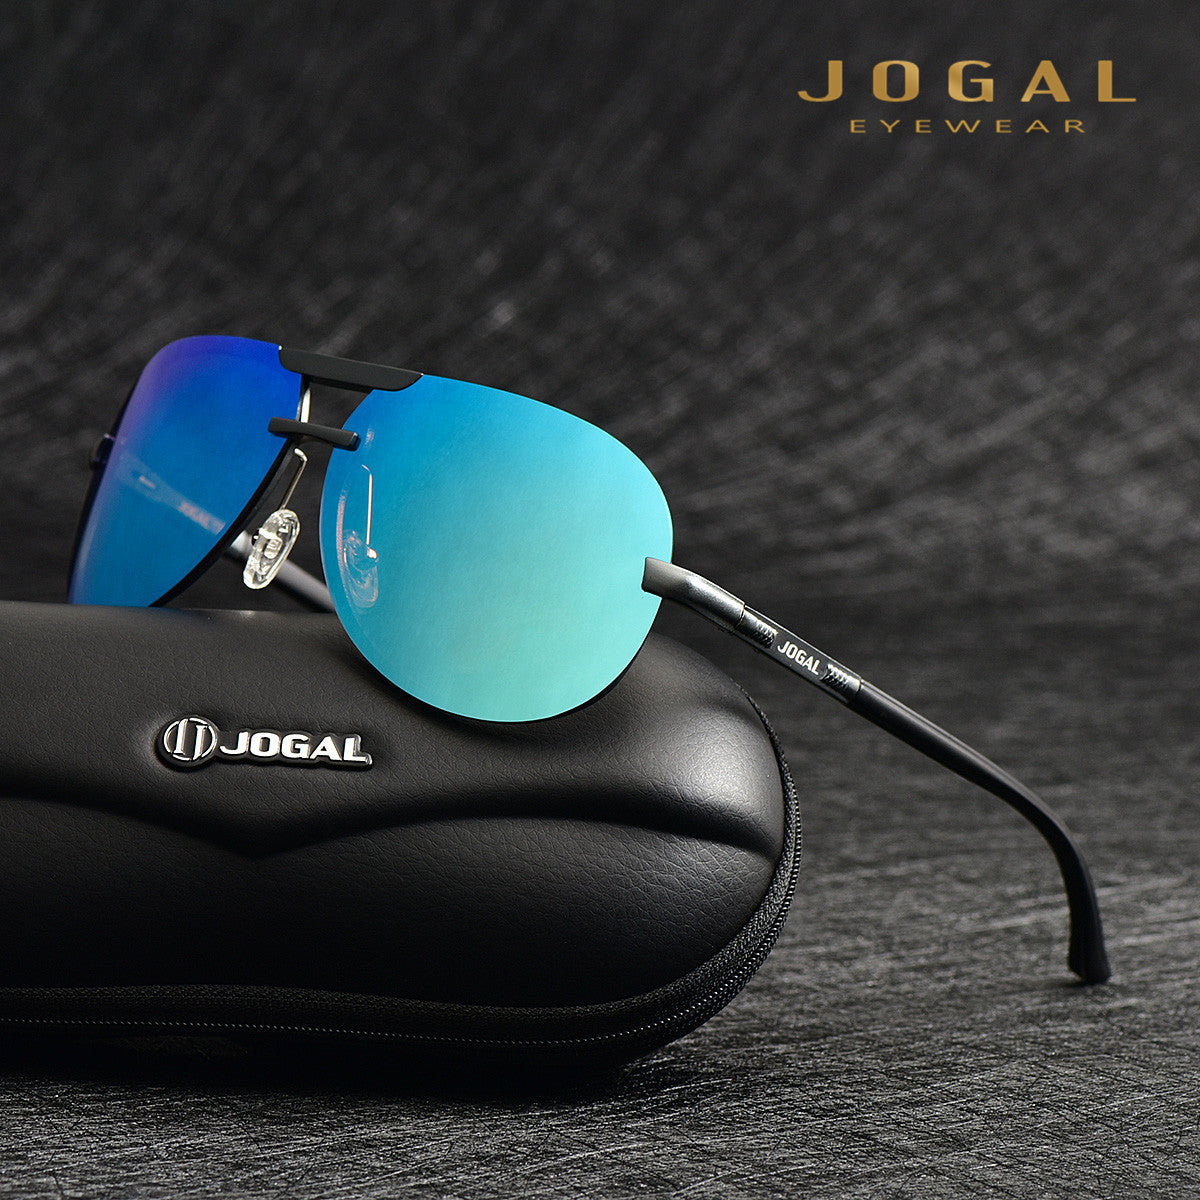 Aluminum Magnesium Men's Sunglasses Polarized Coating Mirror Glasses oculos Male Eyewear